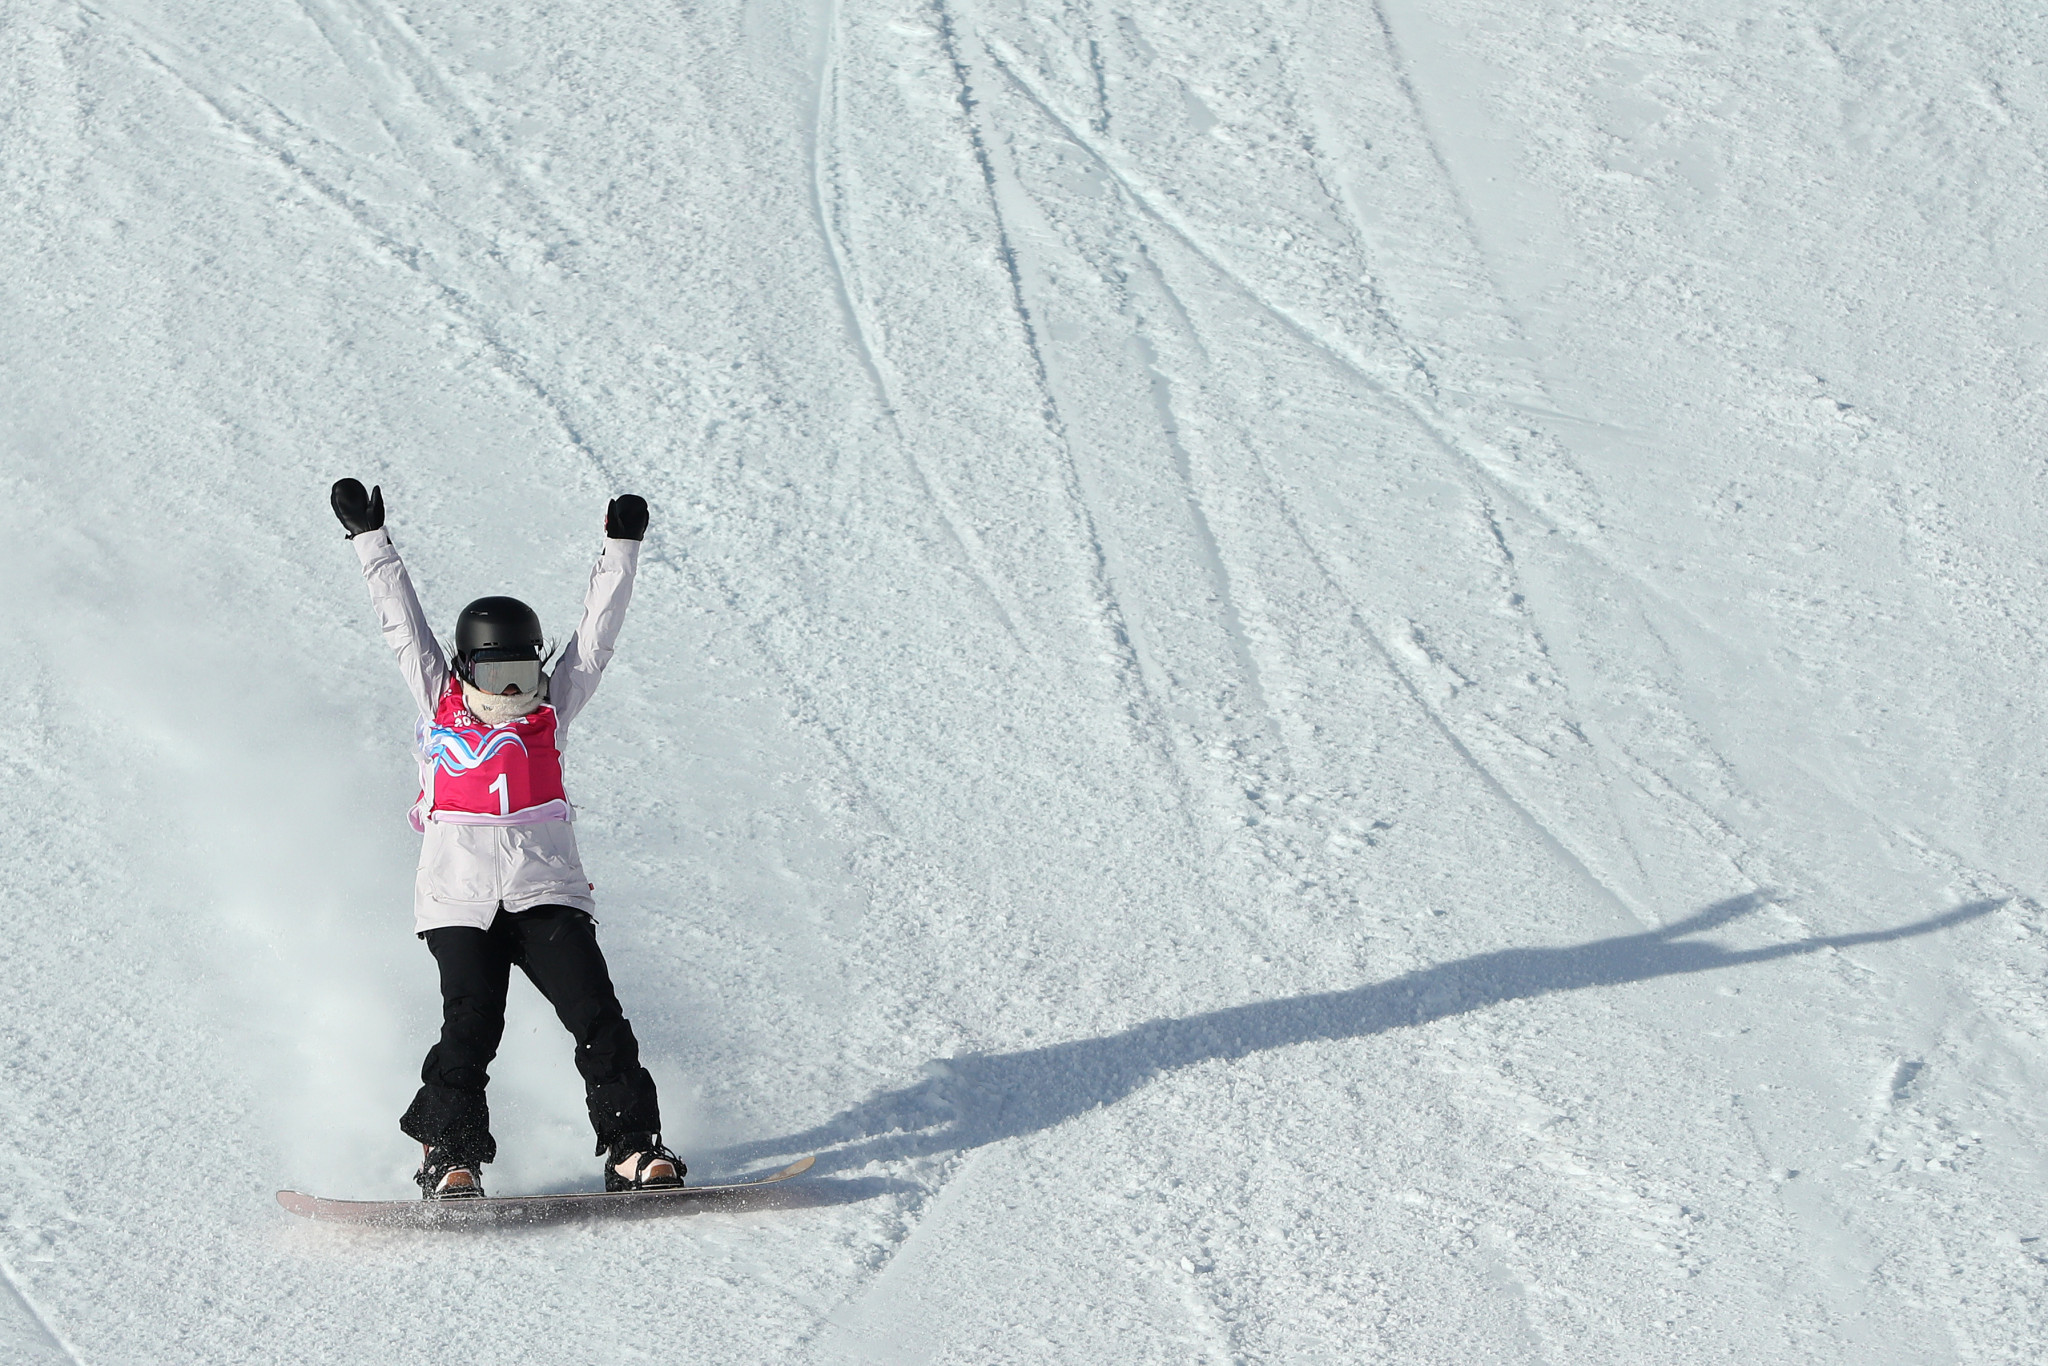 A strong final run ensured Hinari Asanuma won the women's competition ©Getty Images